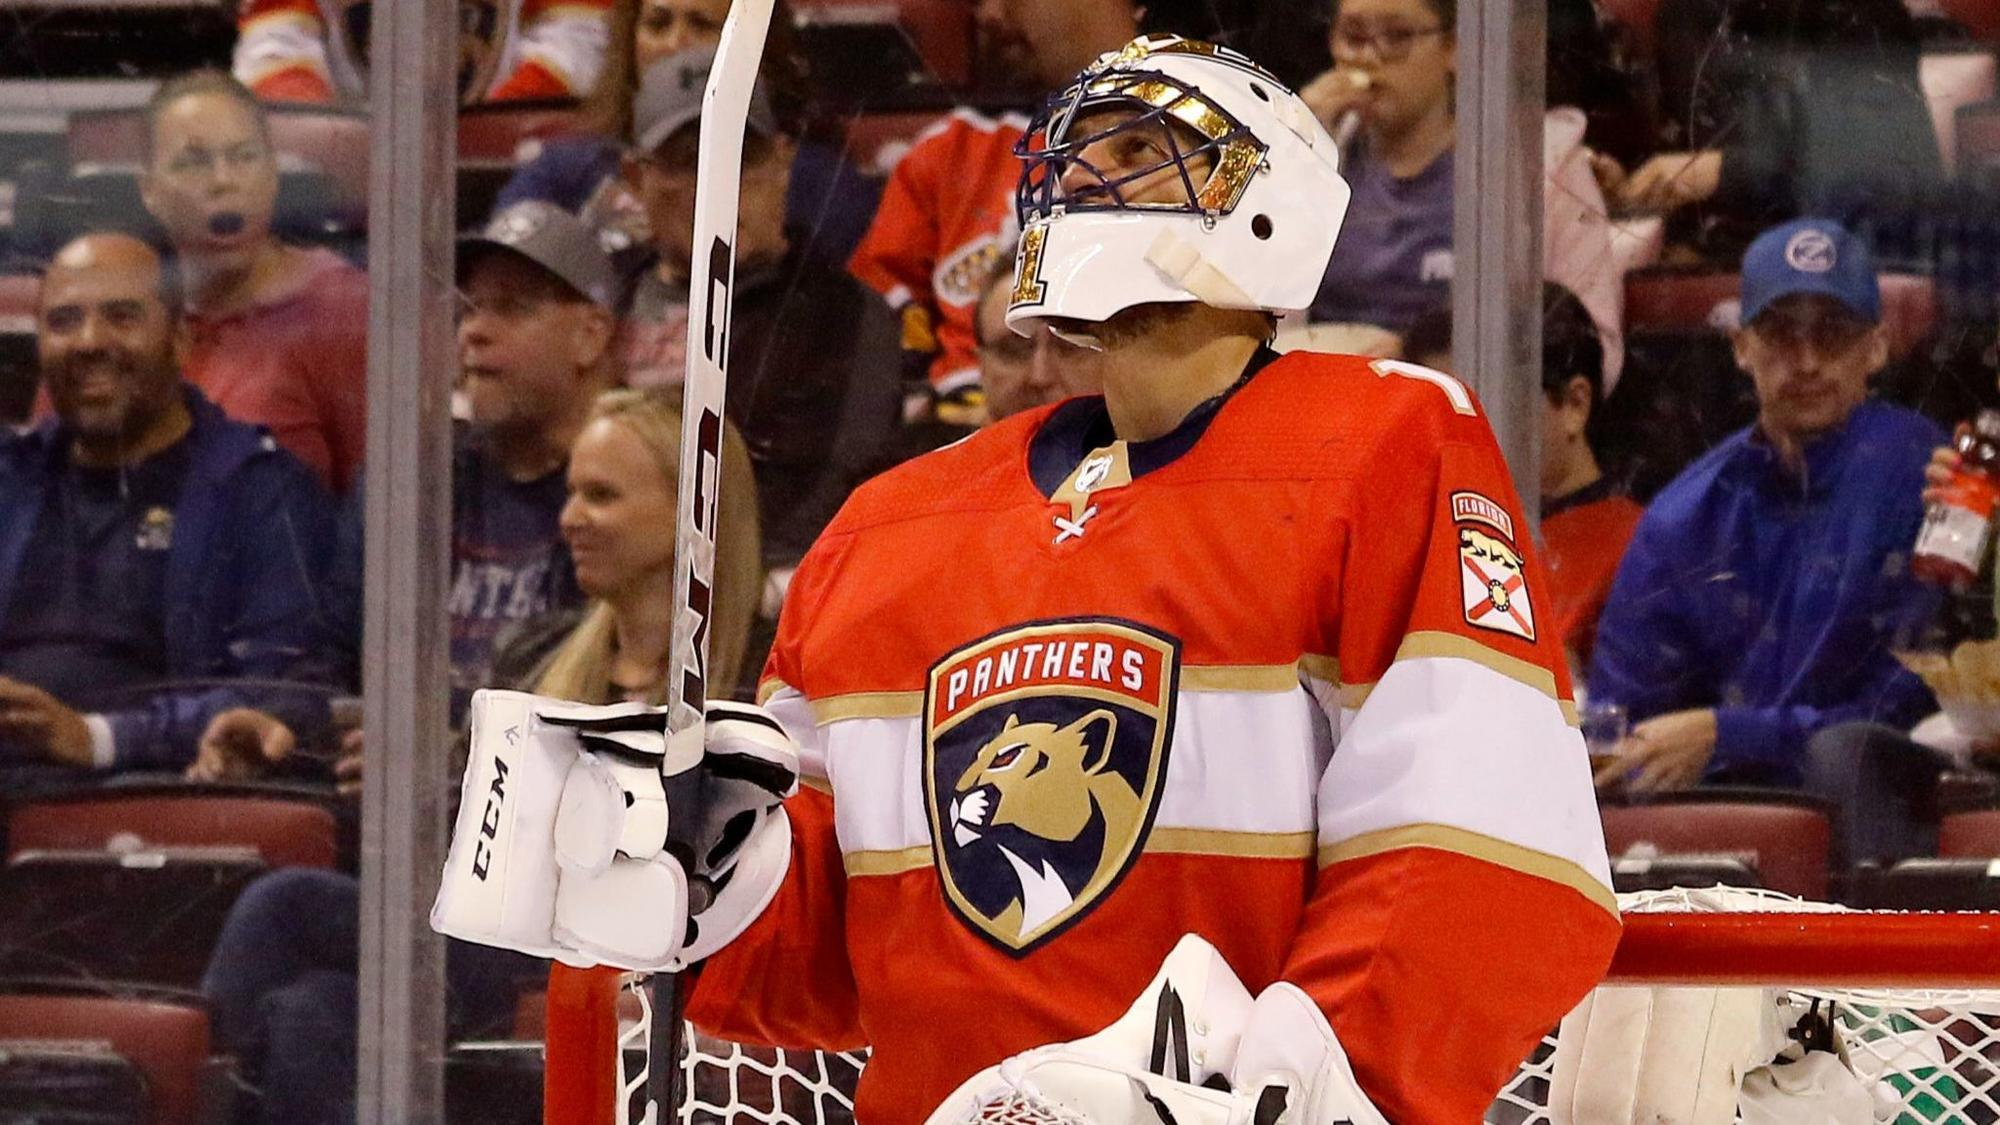 Fl-sp-panthers-mail-roberto-luongo-goaltenders-20171206